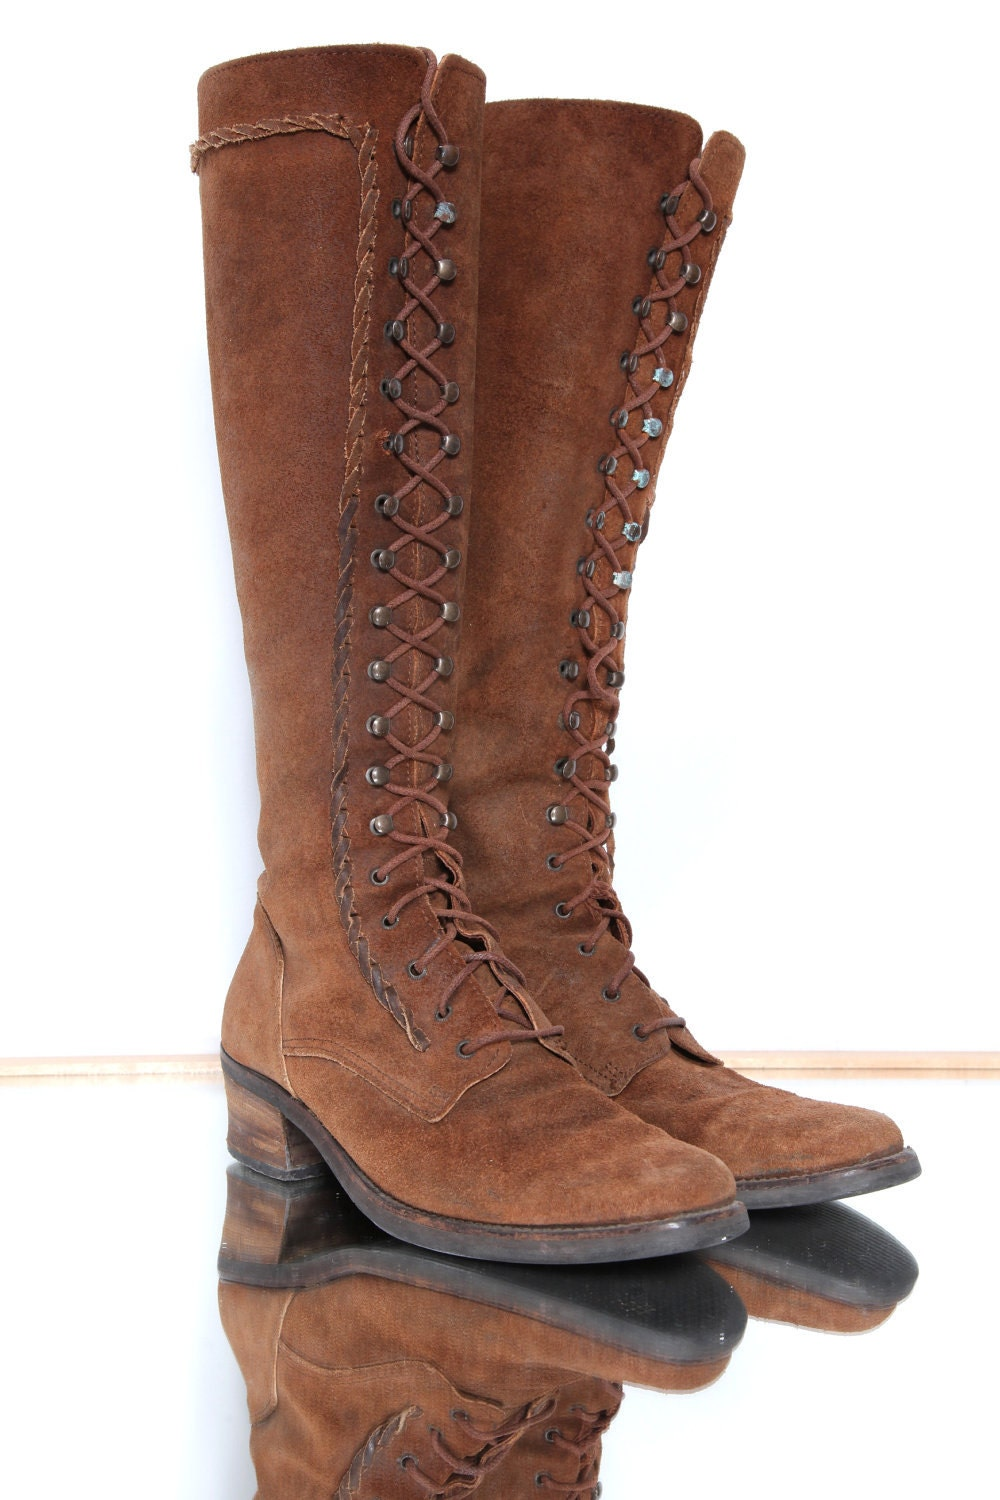 brown suede lace up boot 7 5 by blackgatestudio on etsy